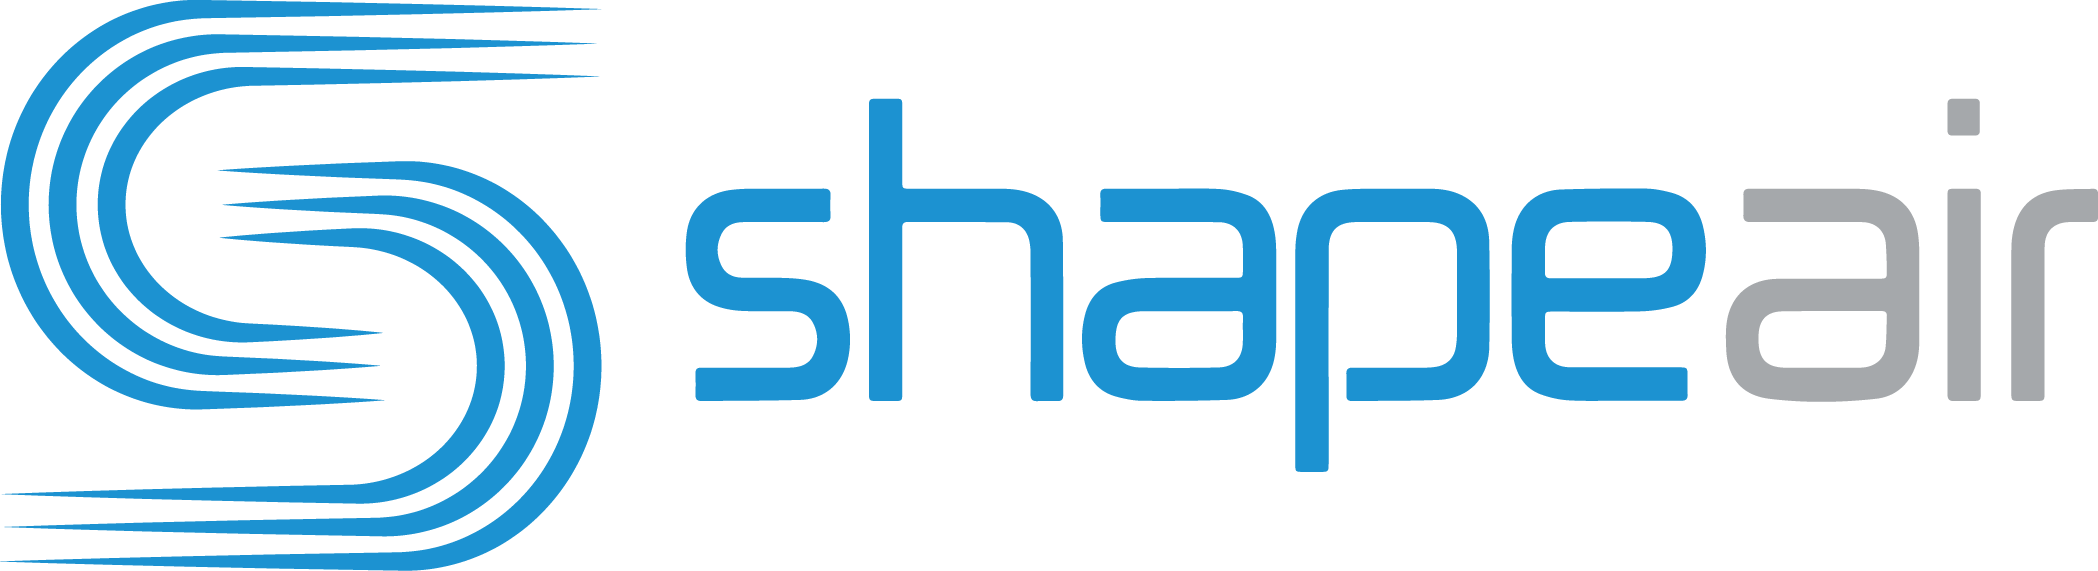 https://www.shapeair.com.au/wp-content/uploads/2019/07/shape-air-logo-footer.png